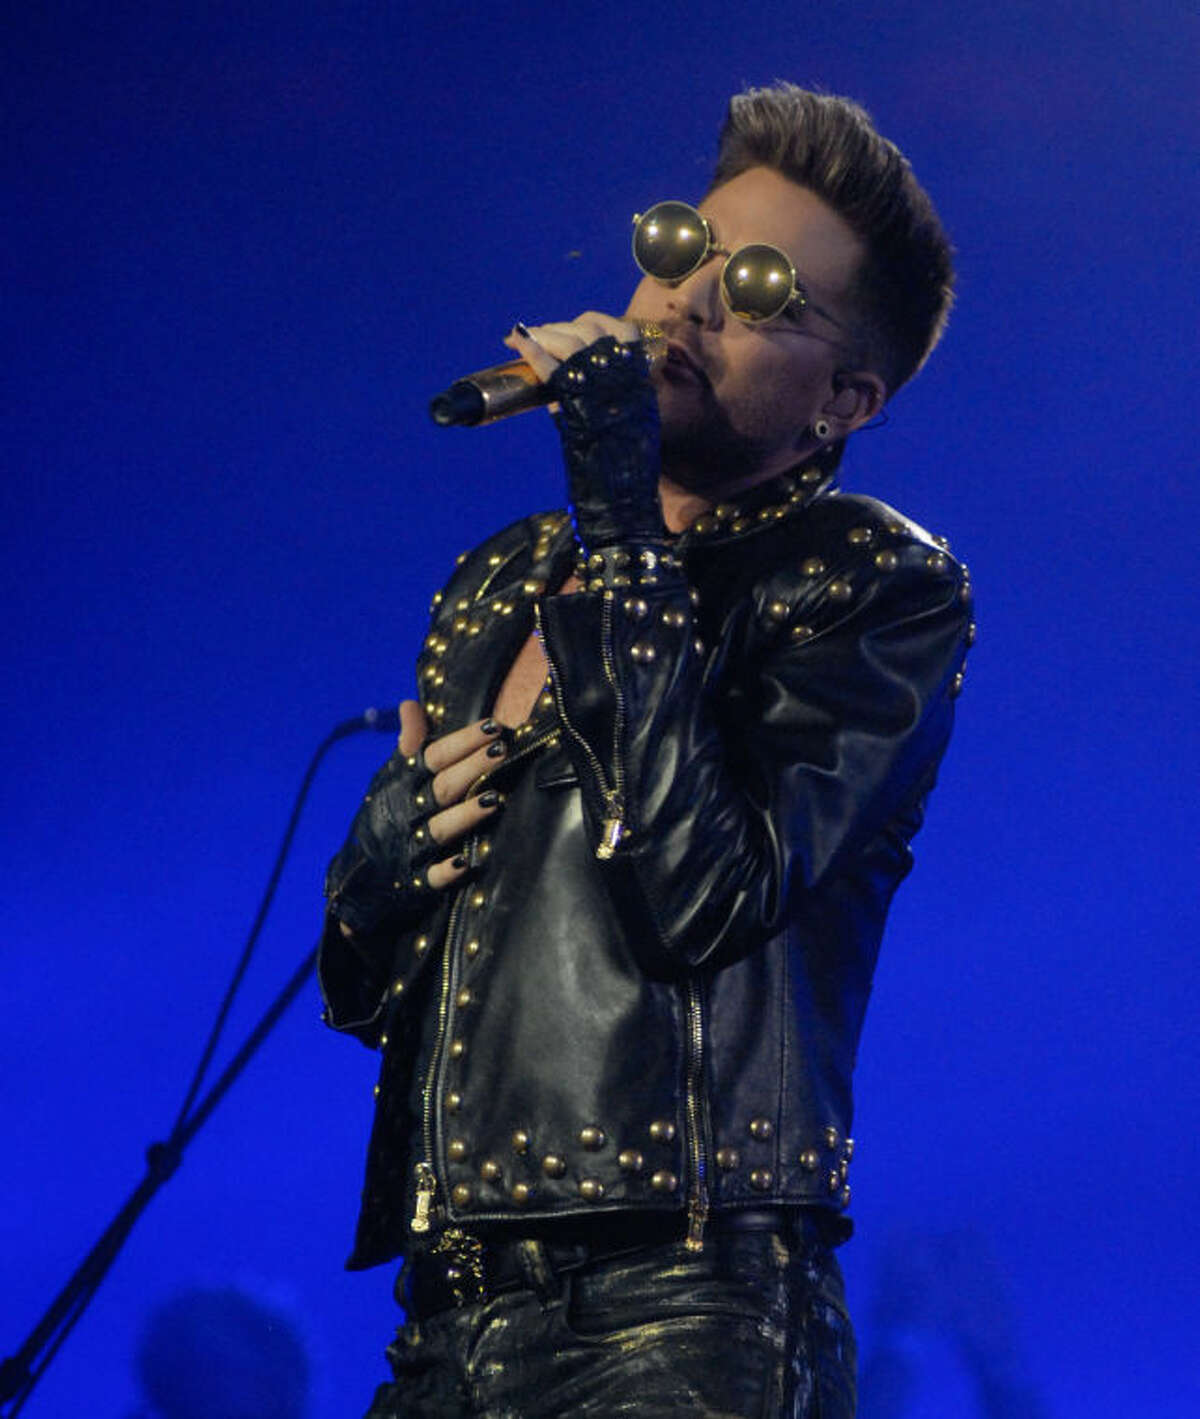 Adam Lambert is fronting the legendary rock and roll band Queen during its current North American tour, which stopped at the Mohegan Sun Arena on Saturday night.